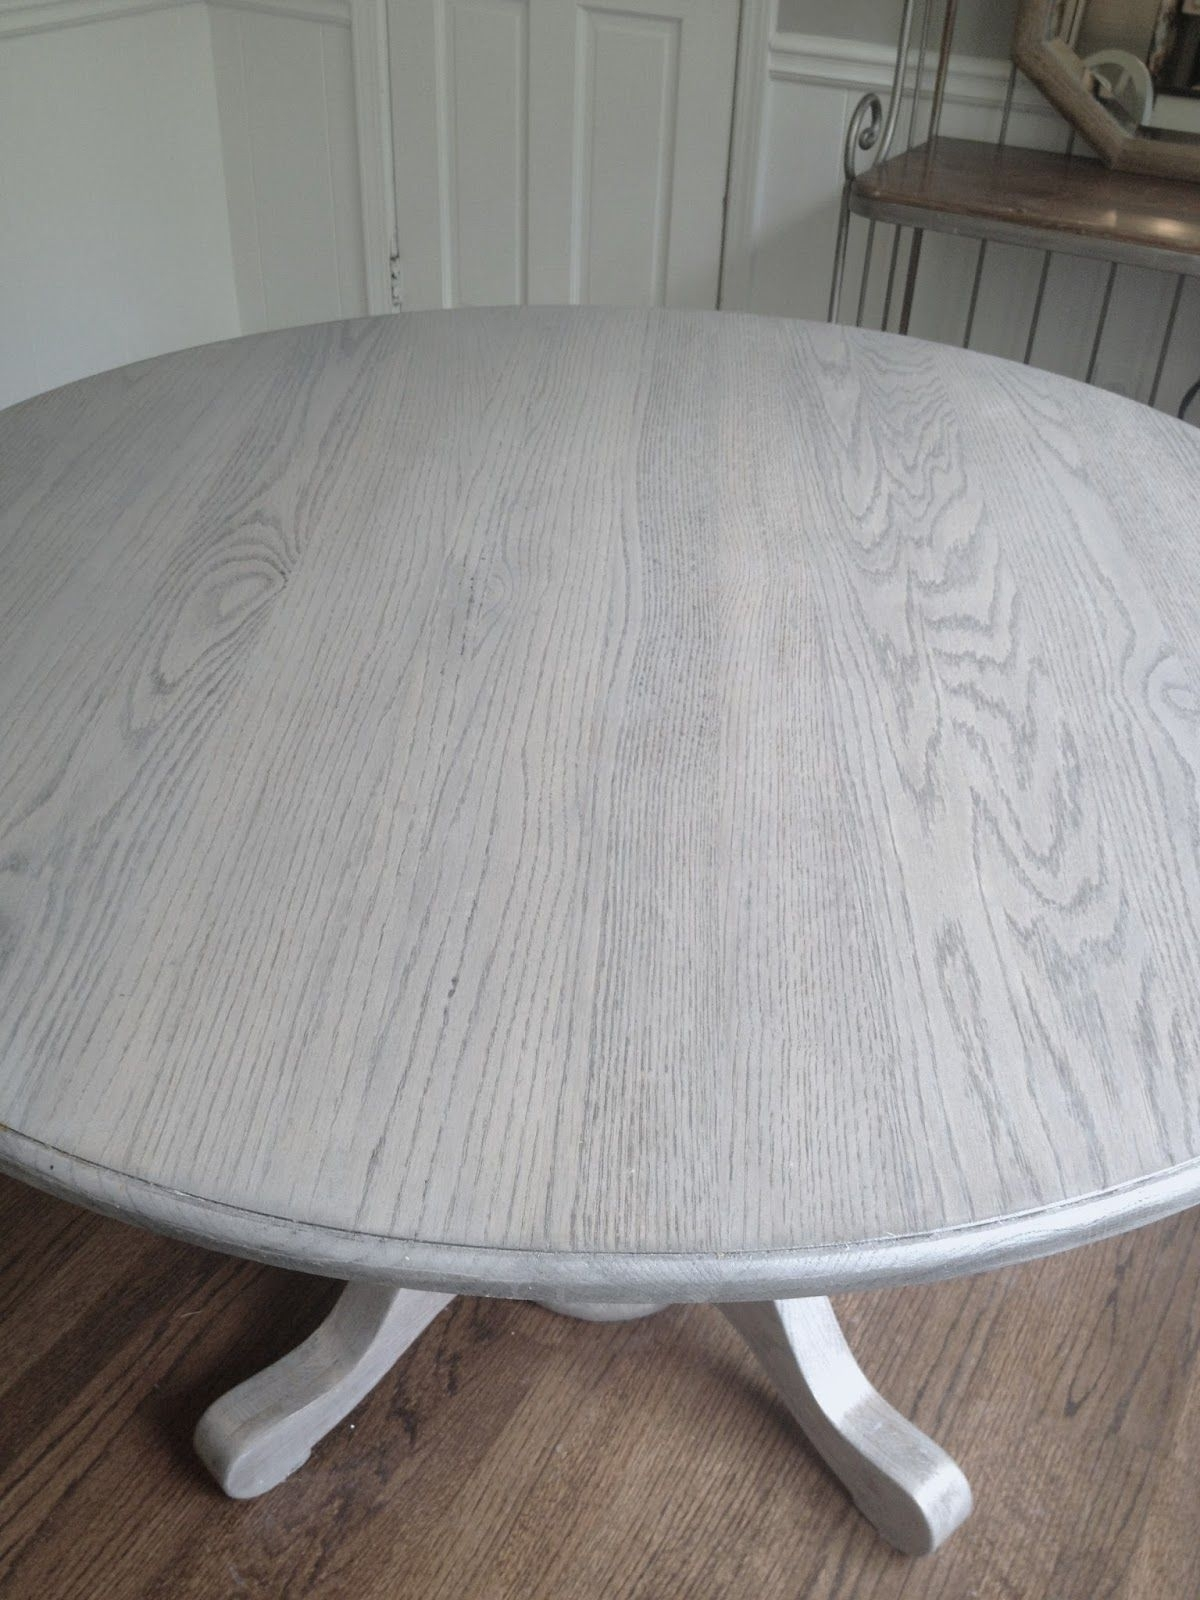 Refinishing Dining Table Gray!!long And Found: Diy Kitchen Table In Most Recently Released Washed Old Oak & Waxed Black Legs Bar Tables (View 12 of 20)